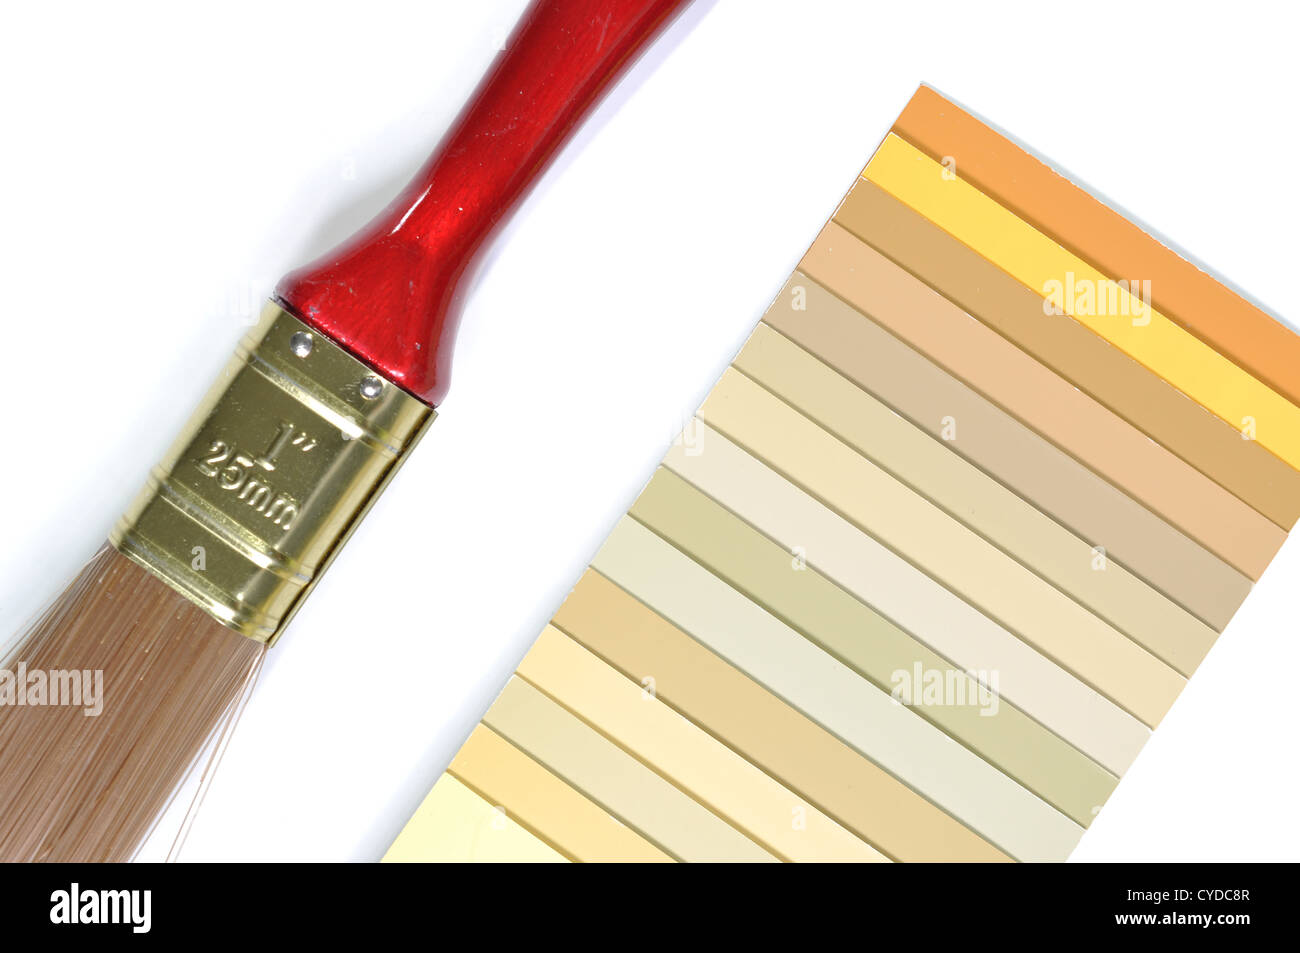 Sample colors catalog and paint brush - Stock Image